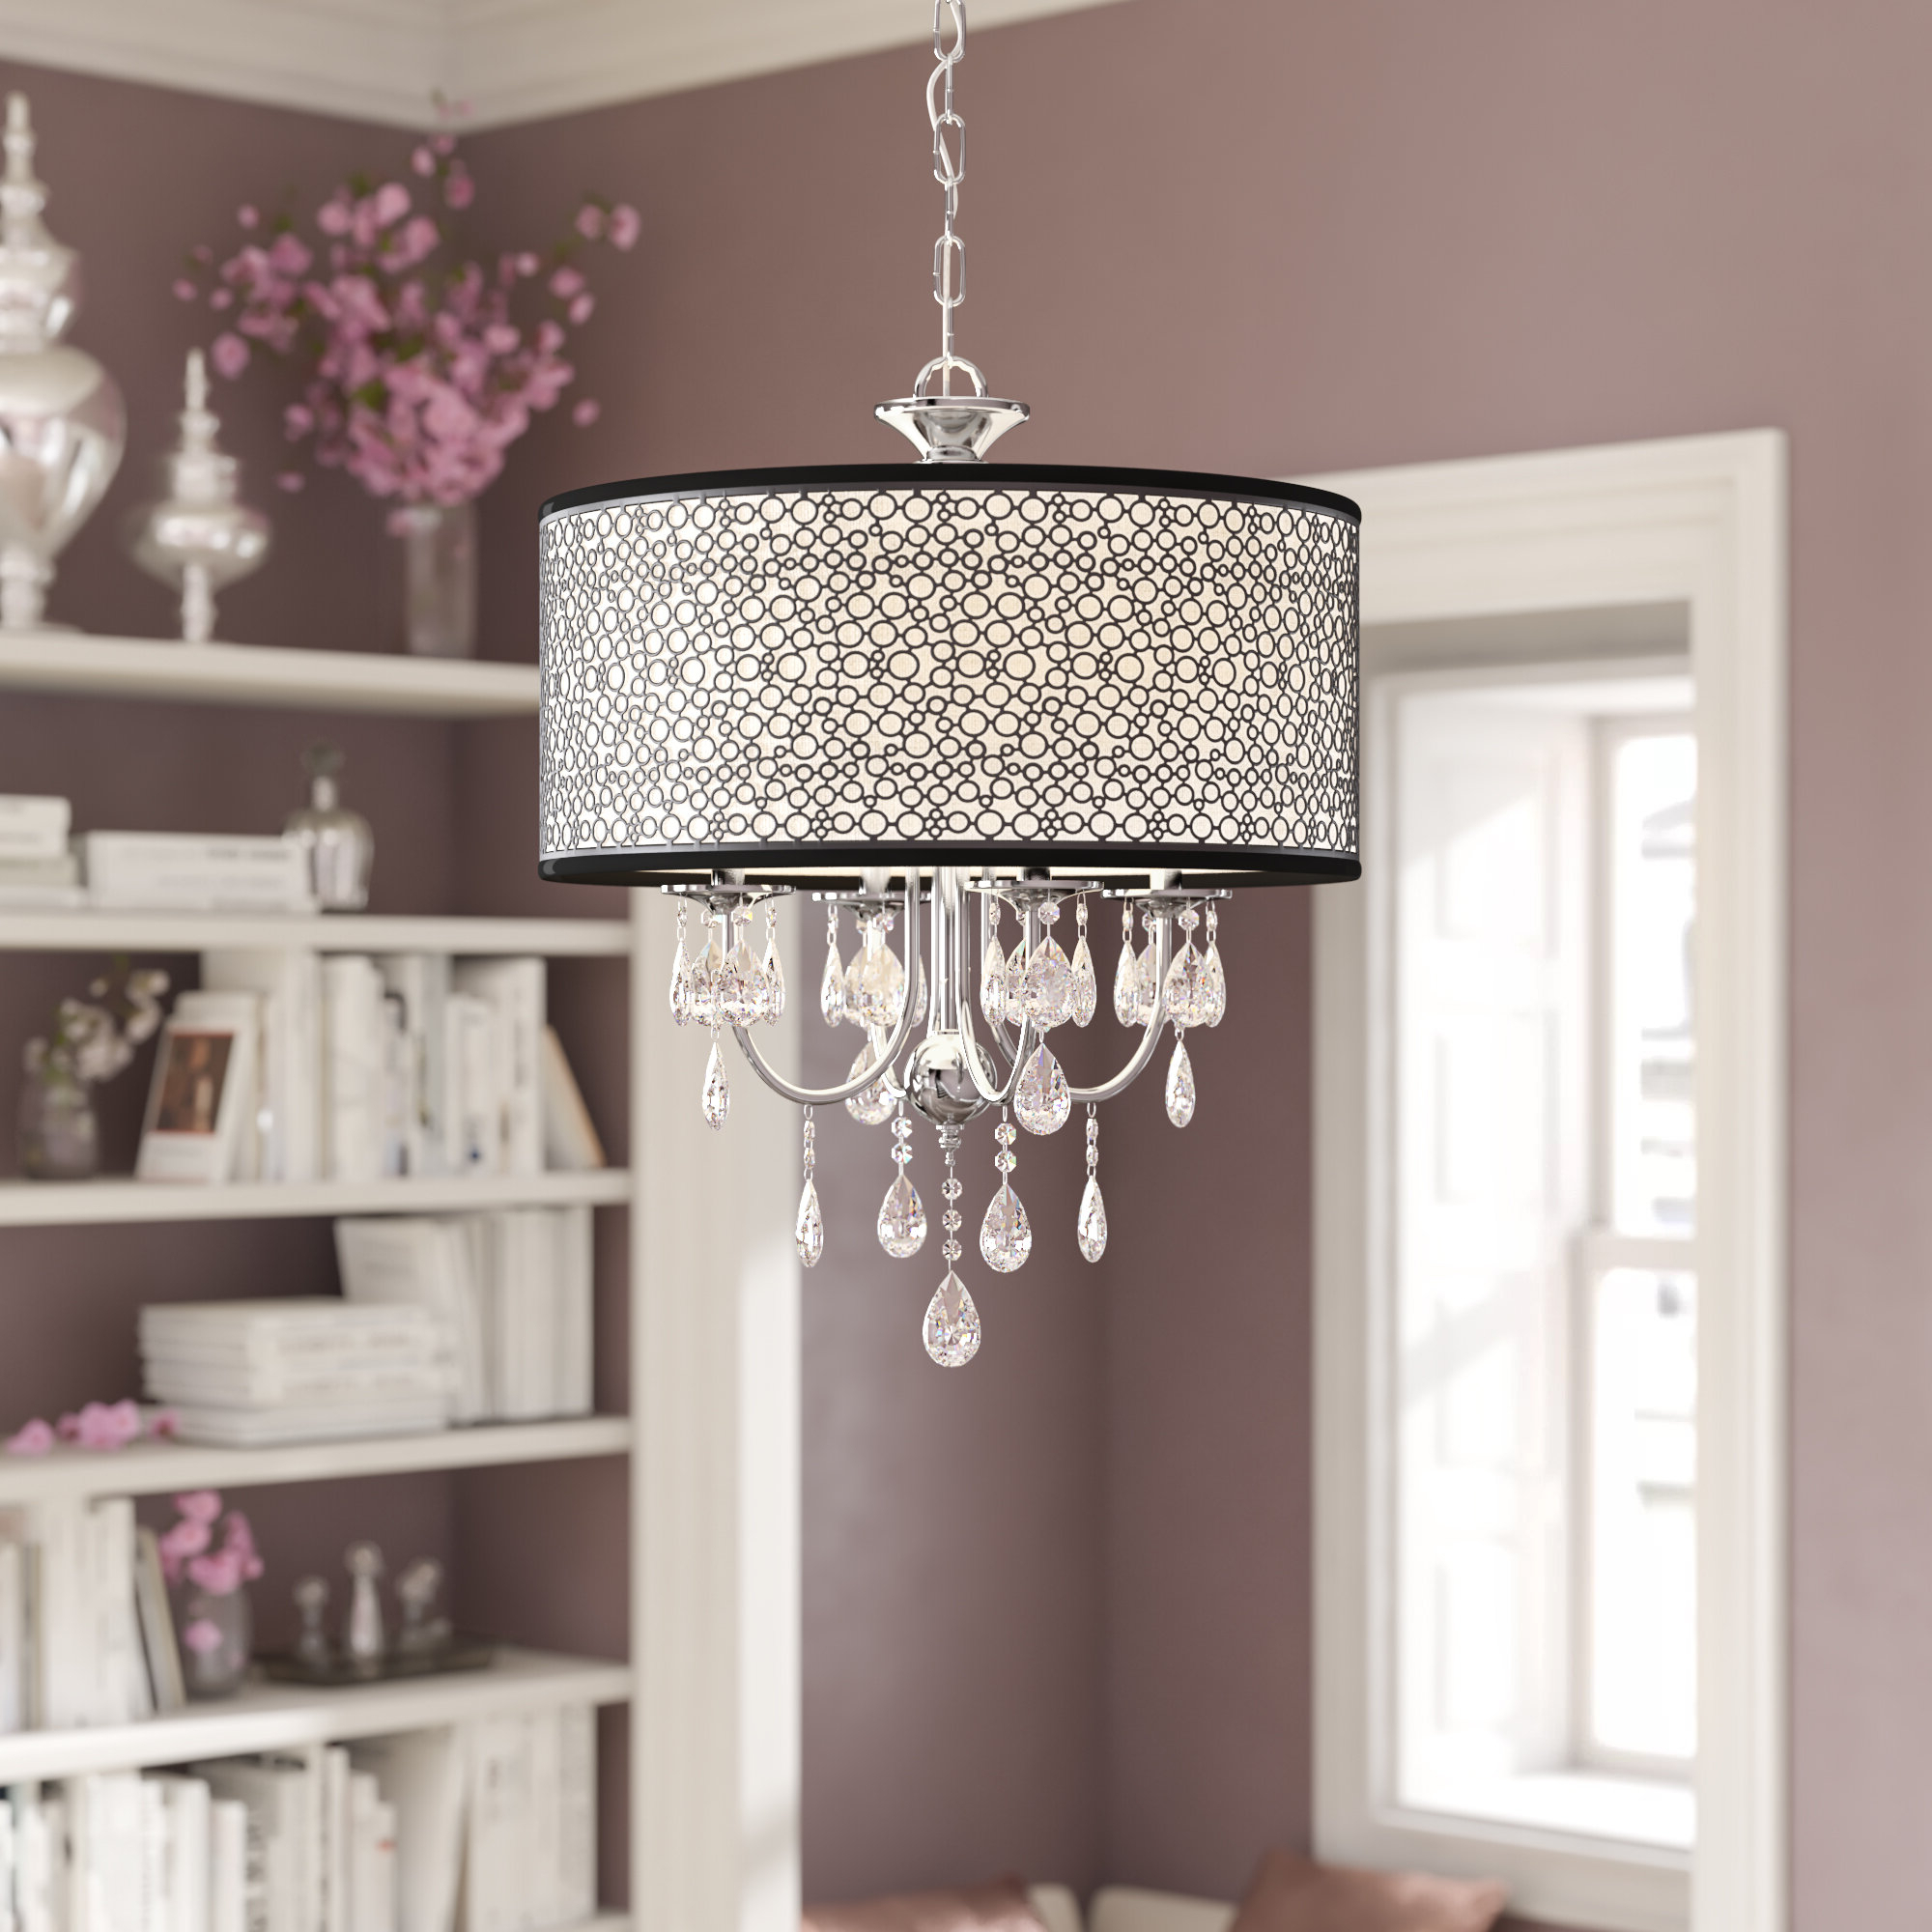 Favorite Jill 4 Light Drum Chandeliers Intended For Darshan 4 Light Drum Chandelier (View 10 of 20)